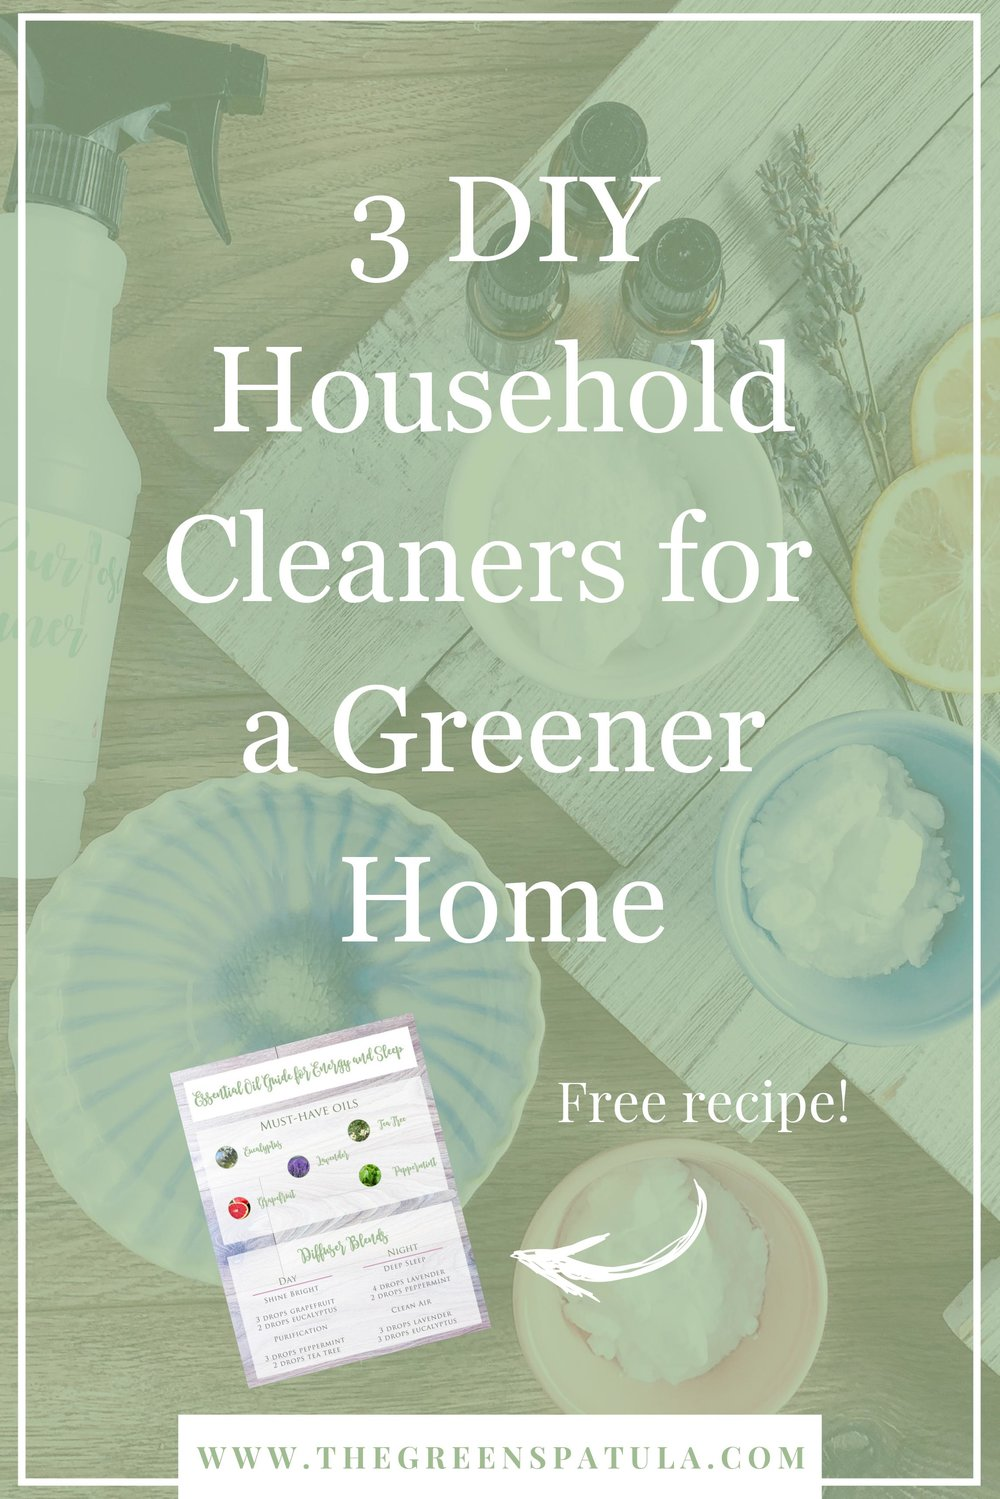 Make powerful cleaners for your home using 3 simple ingredients! These DIY non-toxic and green products that will make your home shine and smell amazing while eliminating harsh chemicals, artificial ingredients, and fragrances. Help keep your family safe and your home clean with the power of natural cleaners. #nontoxic #gogreen #naturalclean #diy #naturalpower